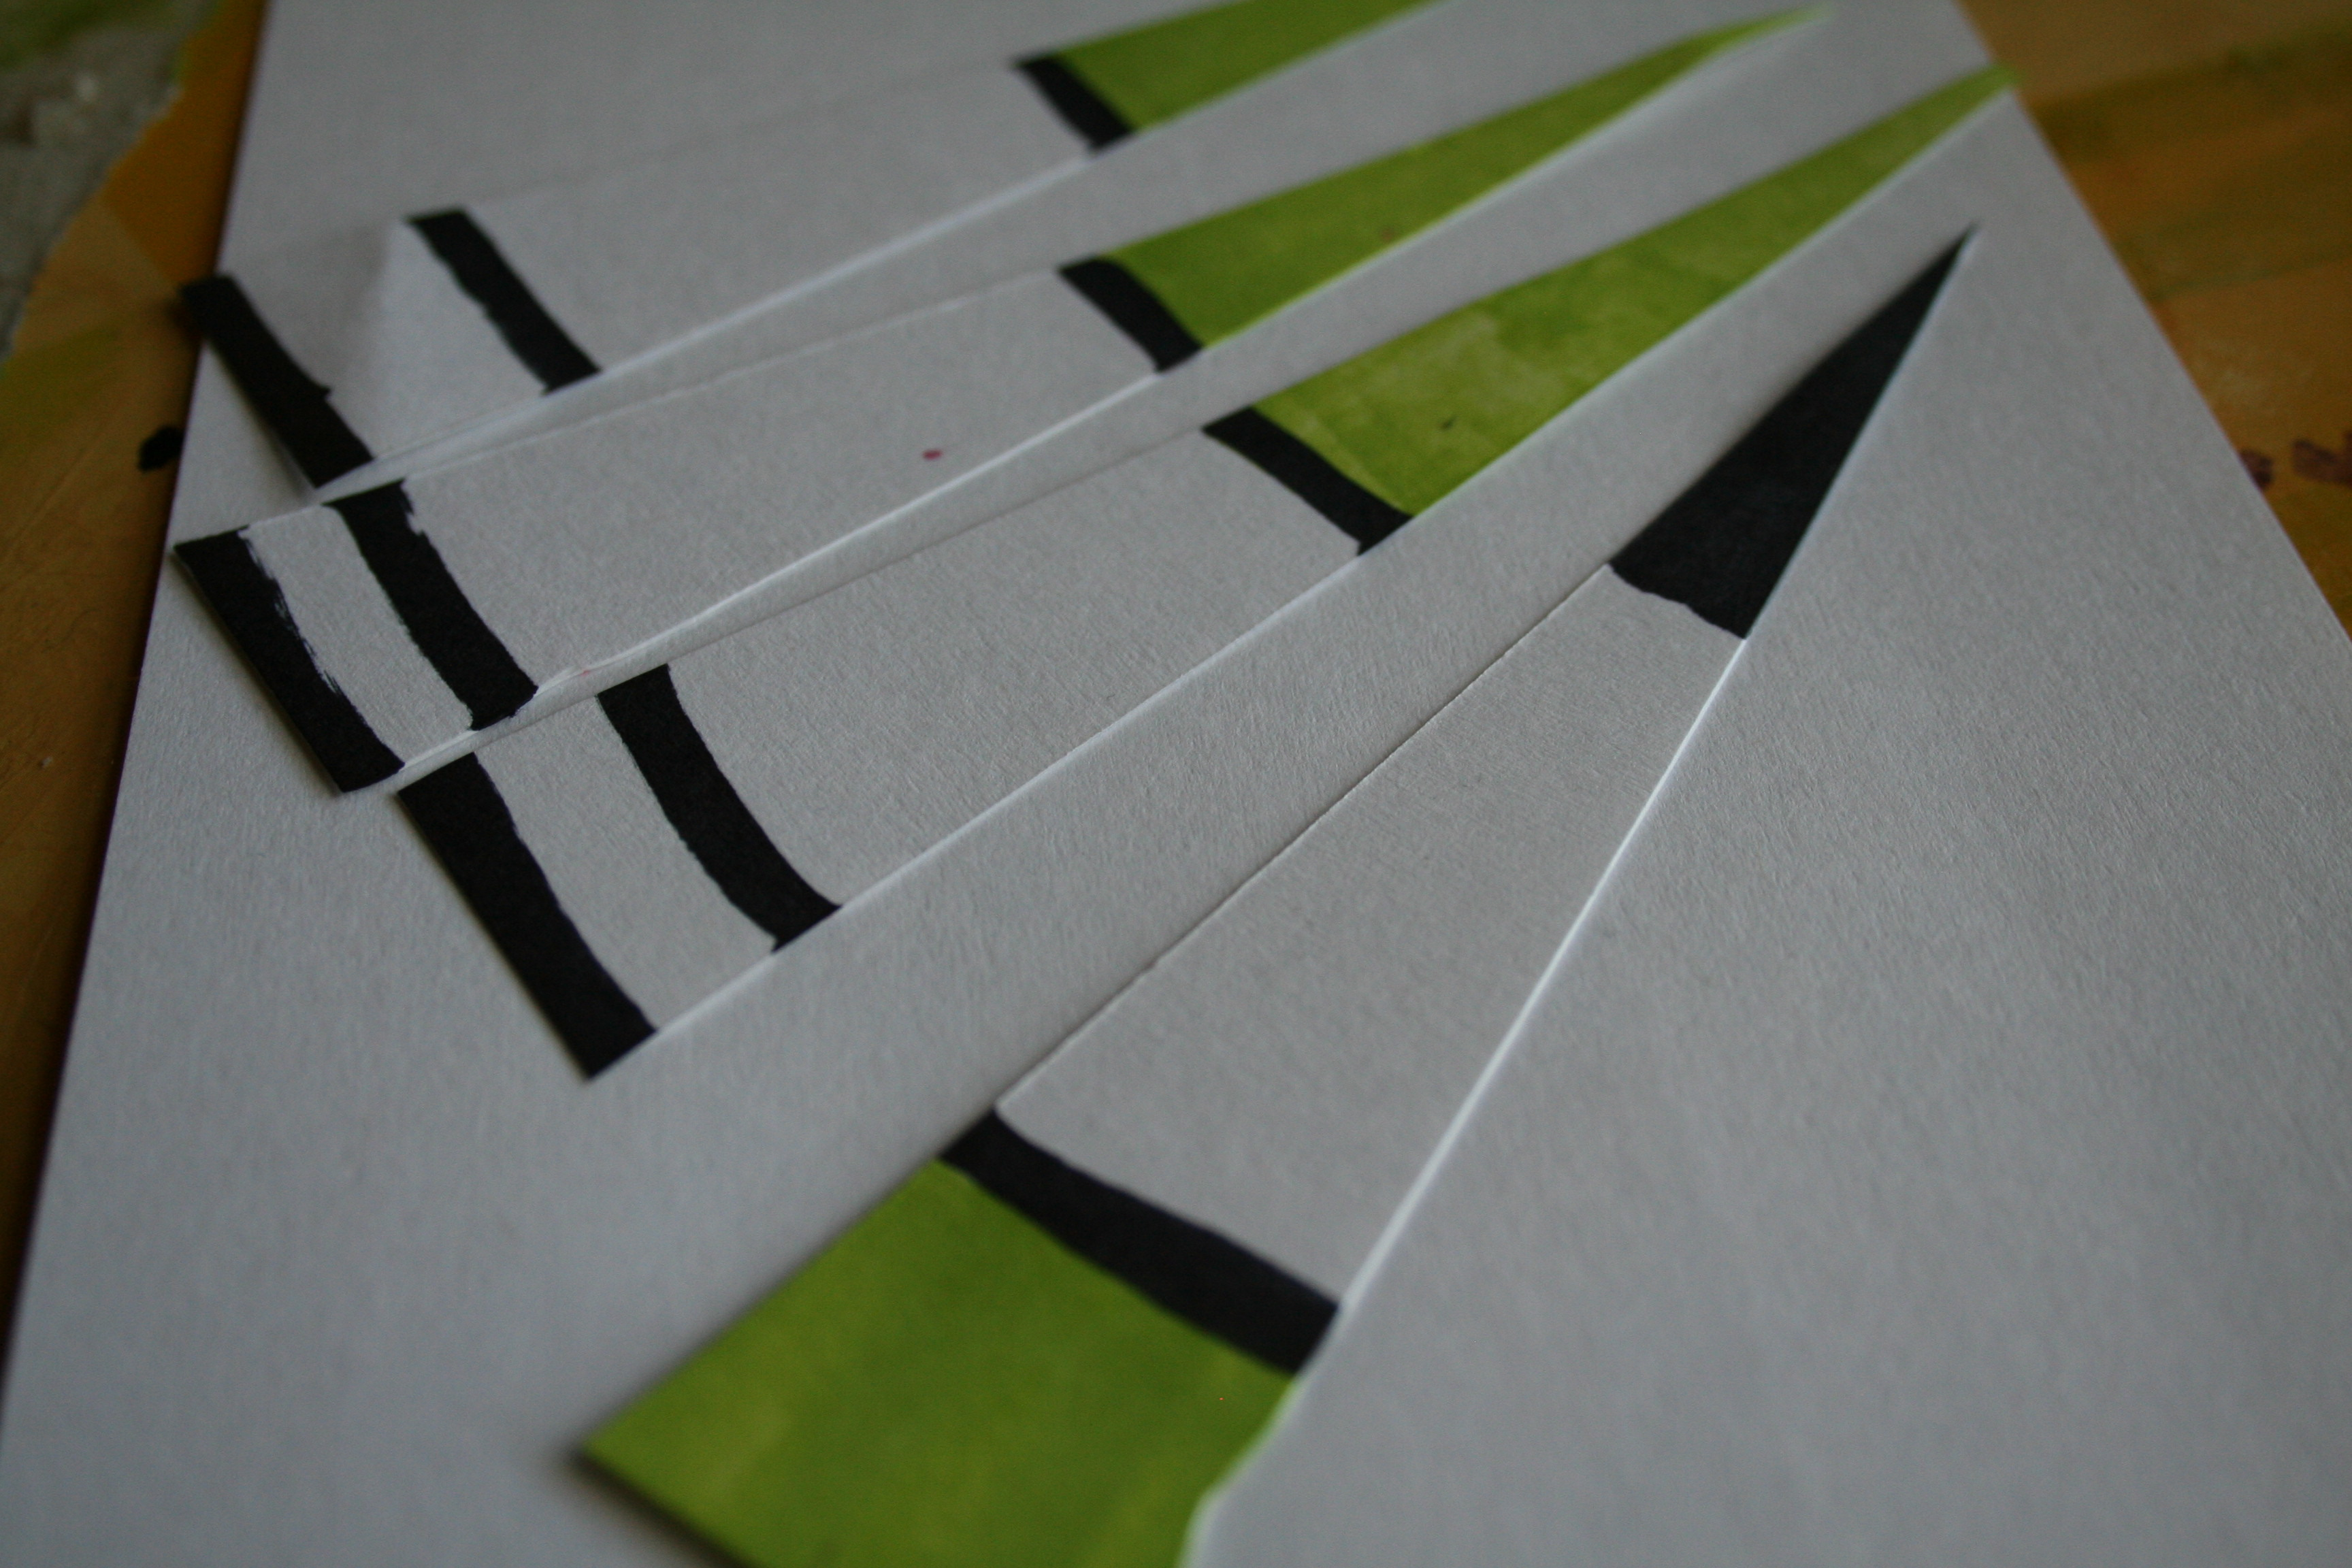 Paper with lines in different colors